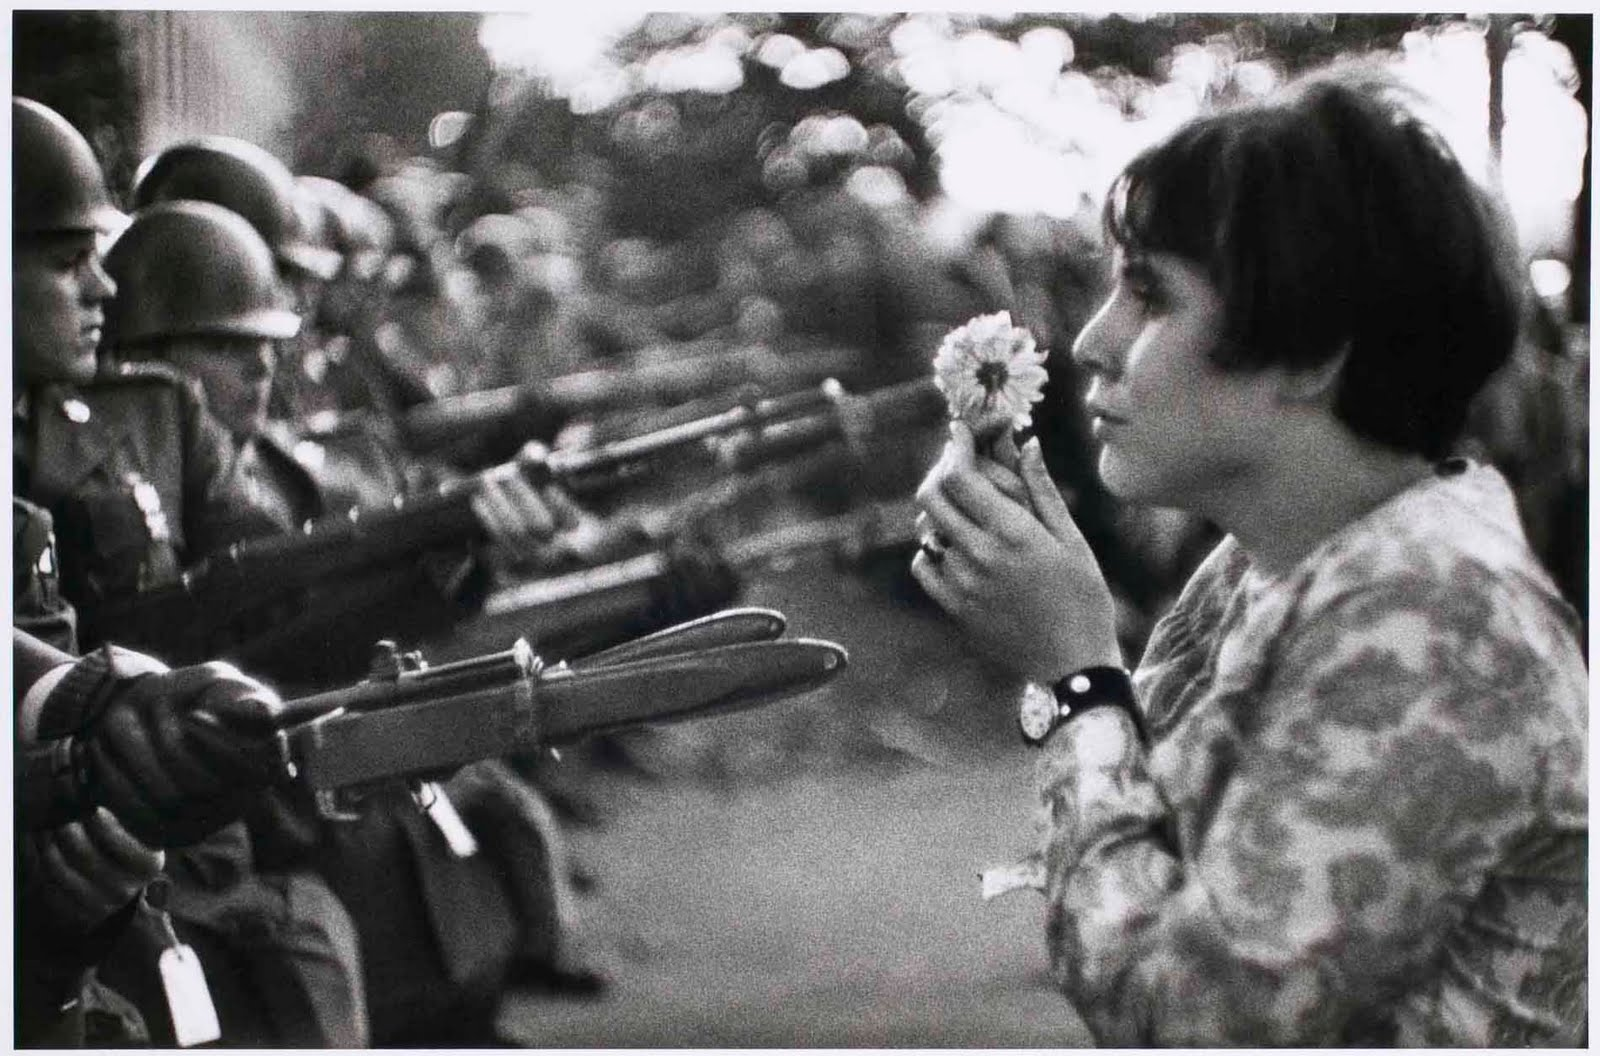 photo+marc+riboud+gp1.jpg